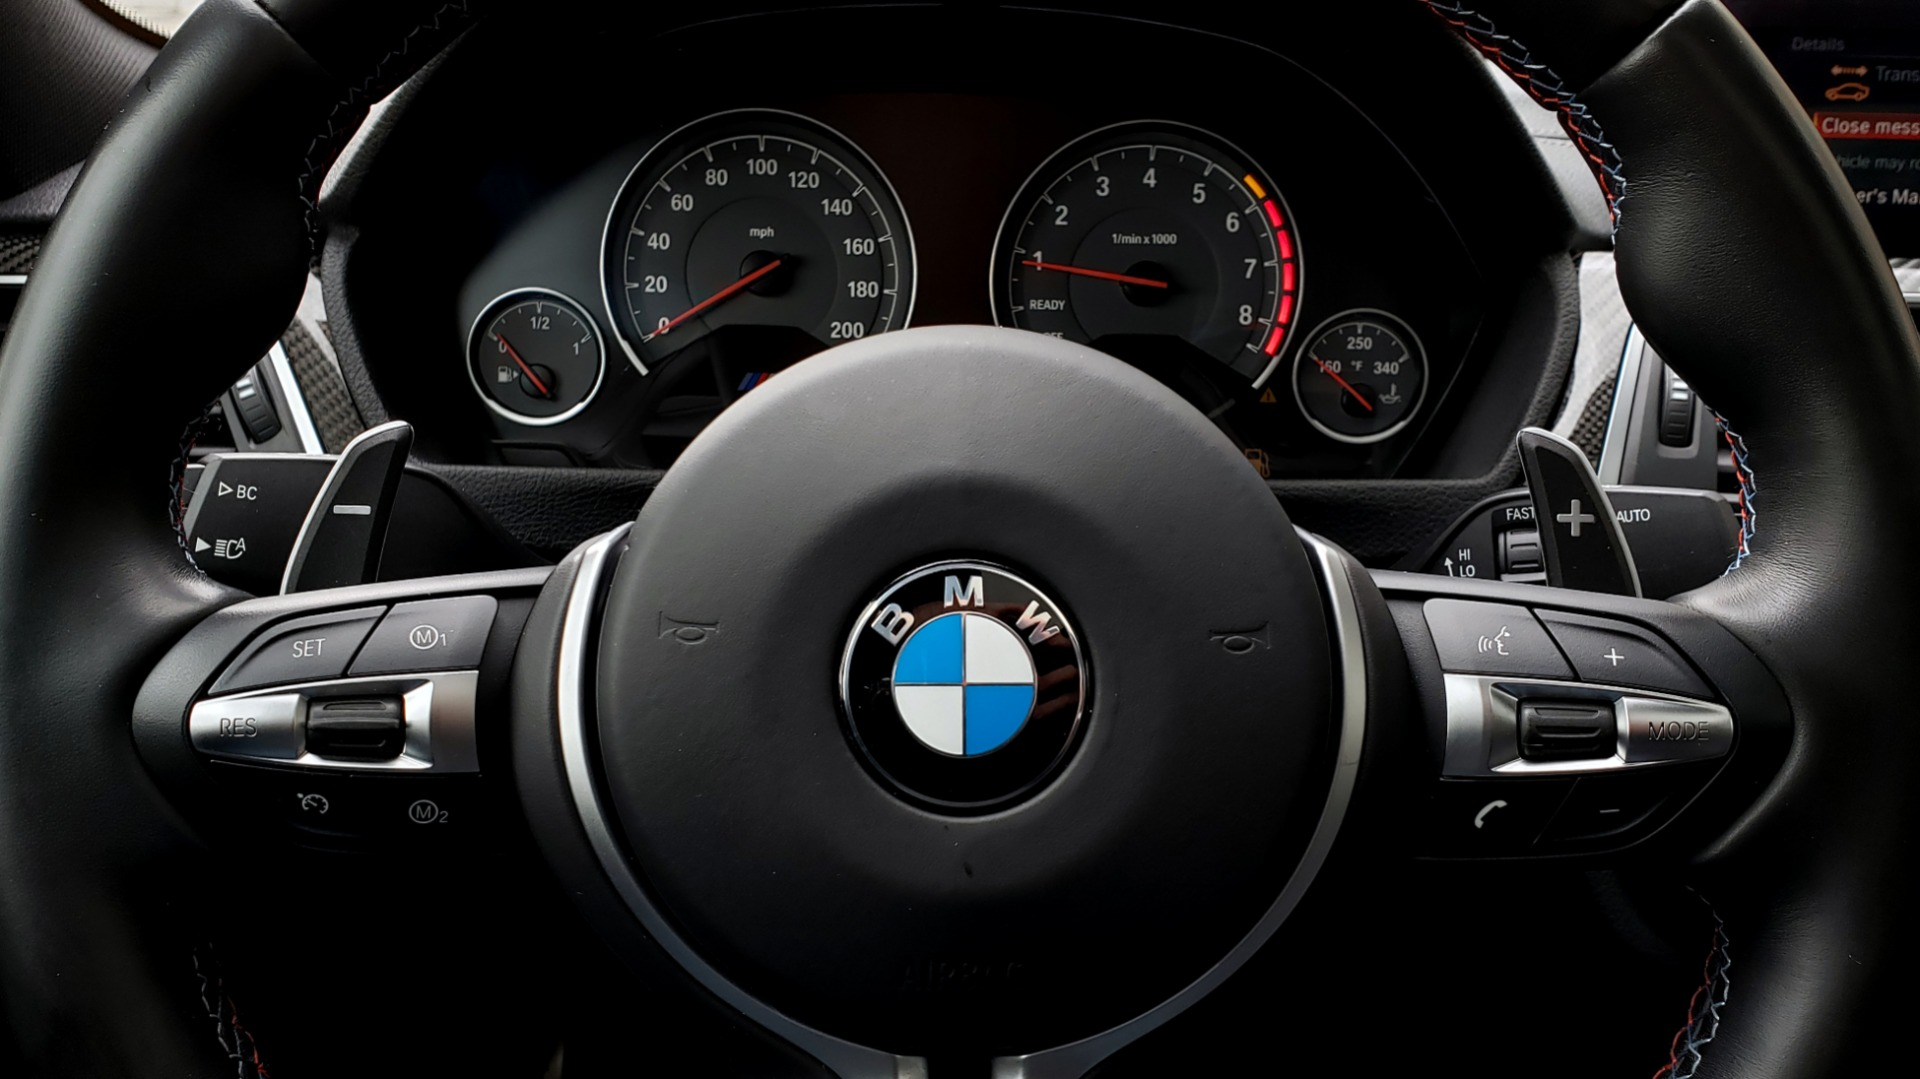 Used 2018 BMW M4 M-COMP / EXEC PKG / 7-SPD DBL CLUTCH / NAV / REARVIEW for sale Sold at Formula Imports in Charlotte NC 28227 35